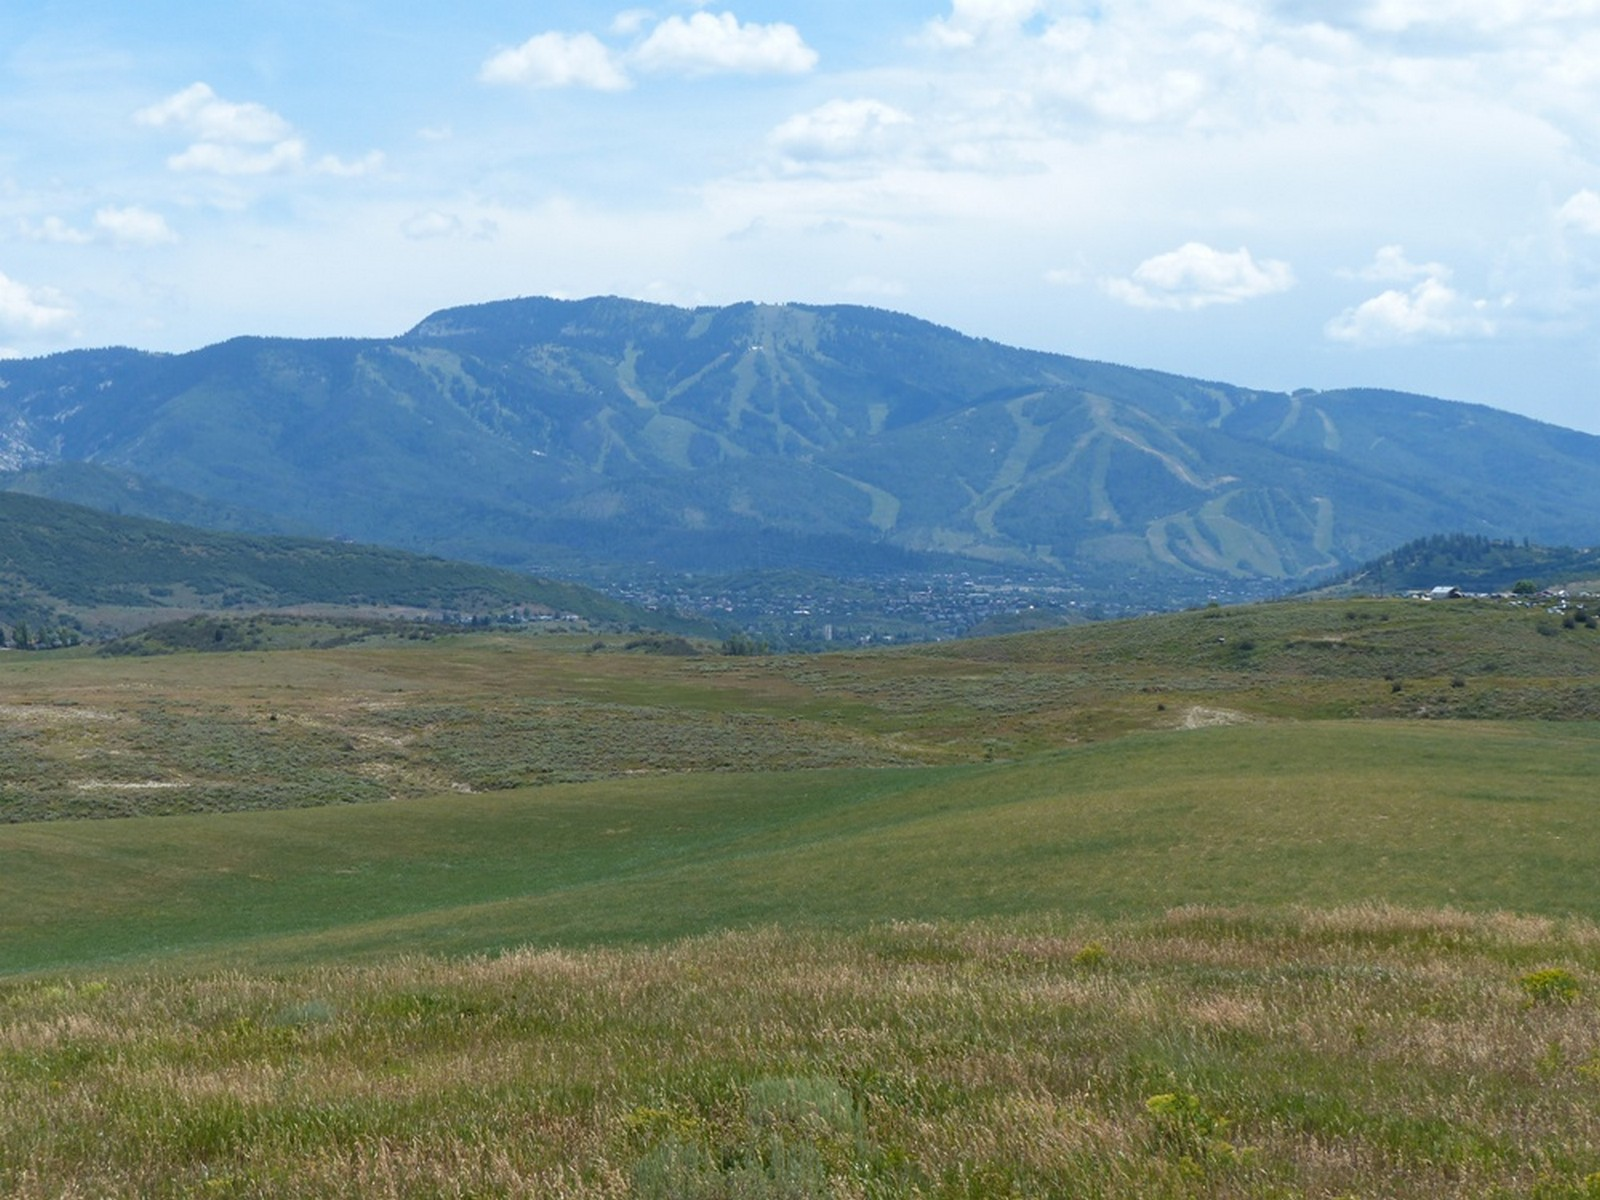 Đất đai vì Bán tại WEST STEAMBOAT OPPORTUNITY TO INVEST TBD Highway 40 Steamboat Springs, Colorado 80487 Hoa Kỳ